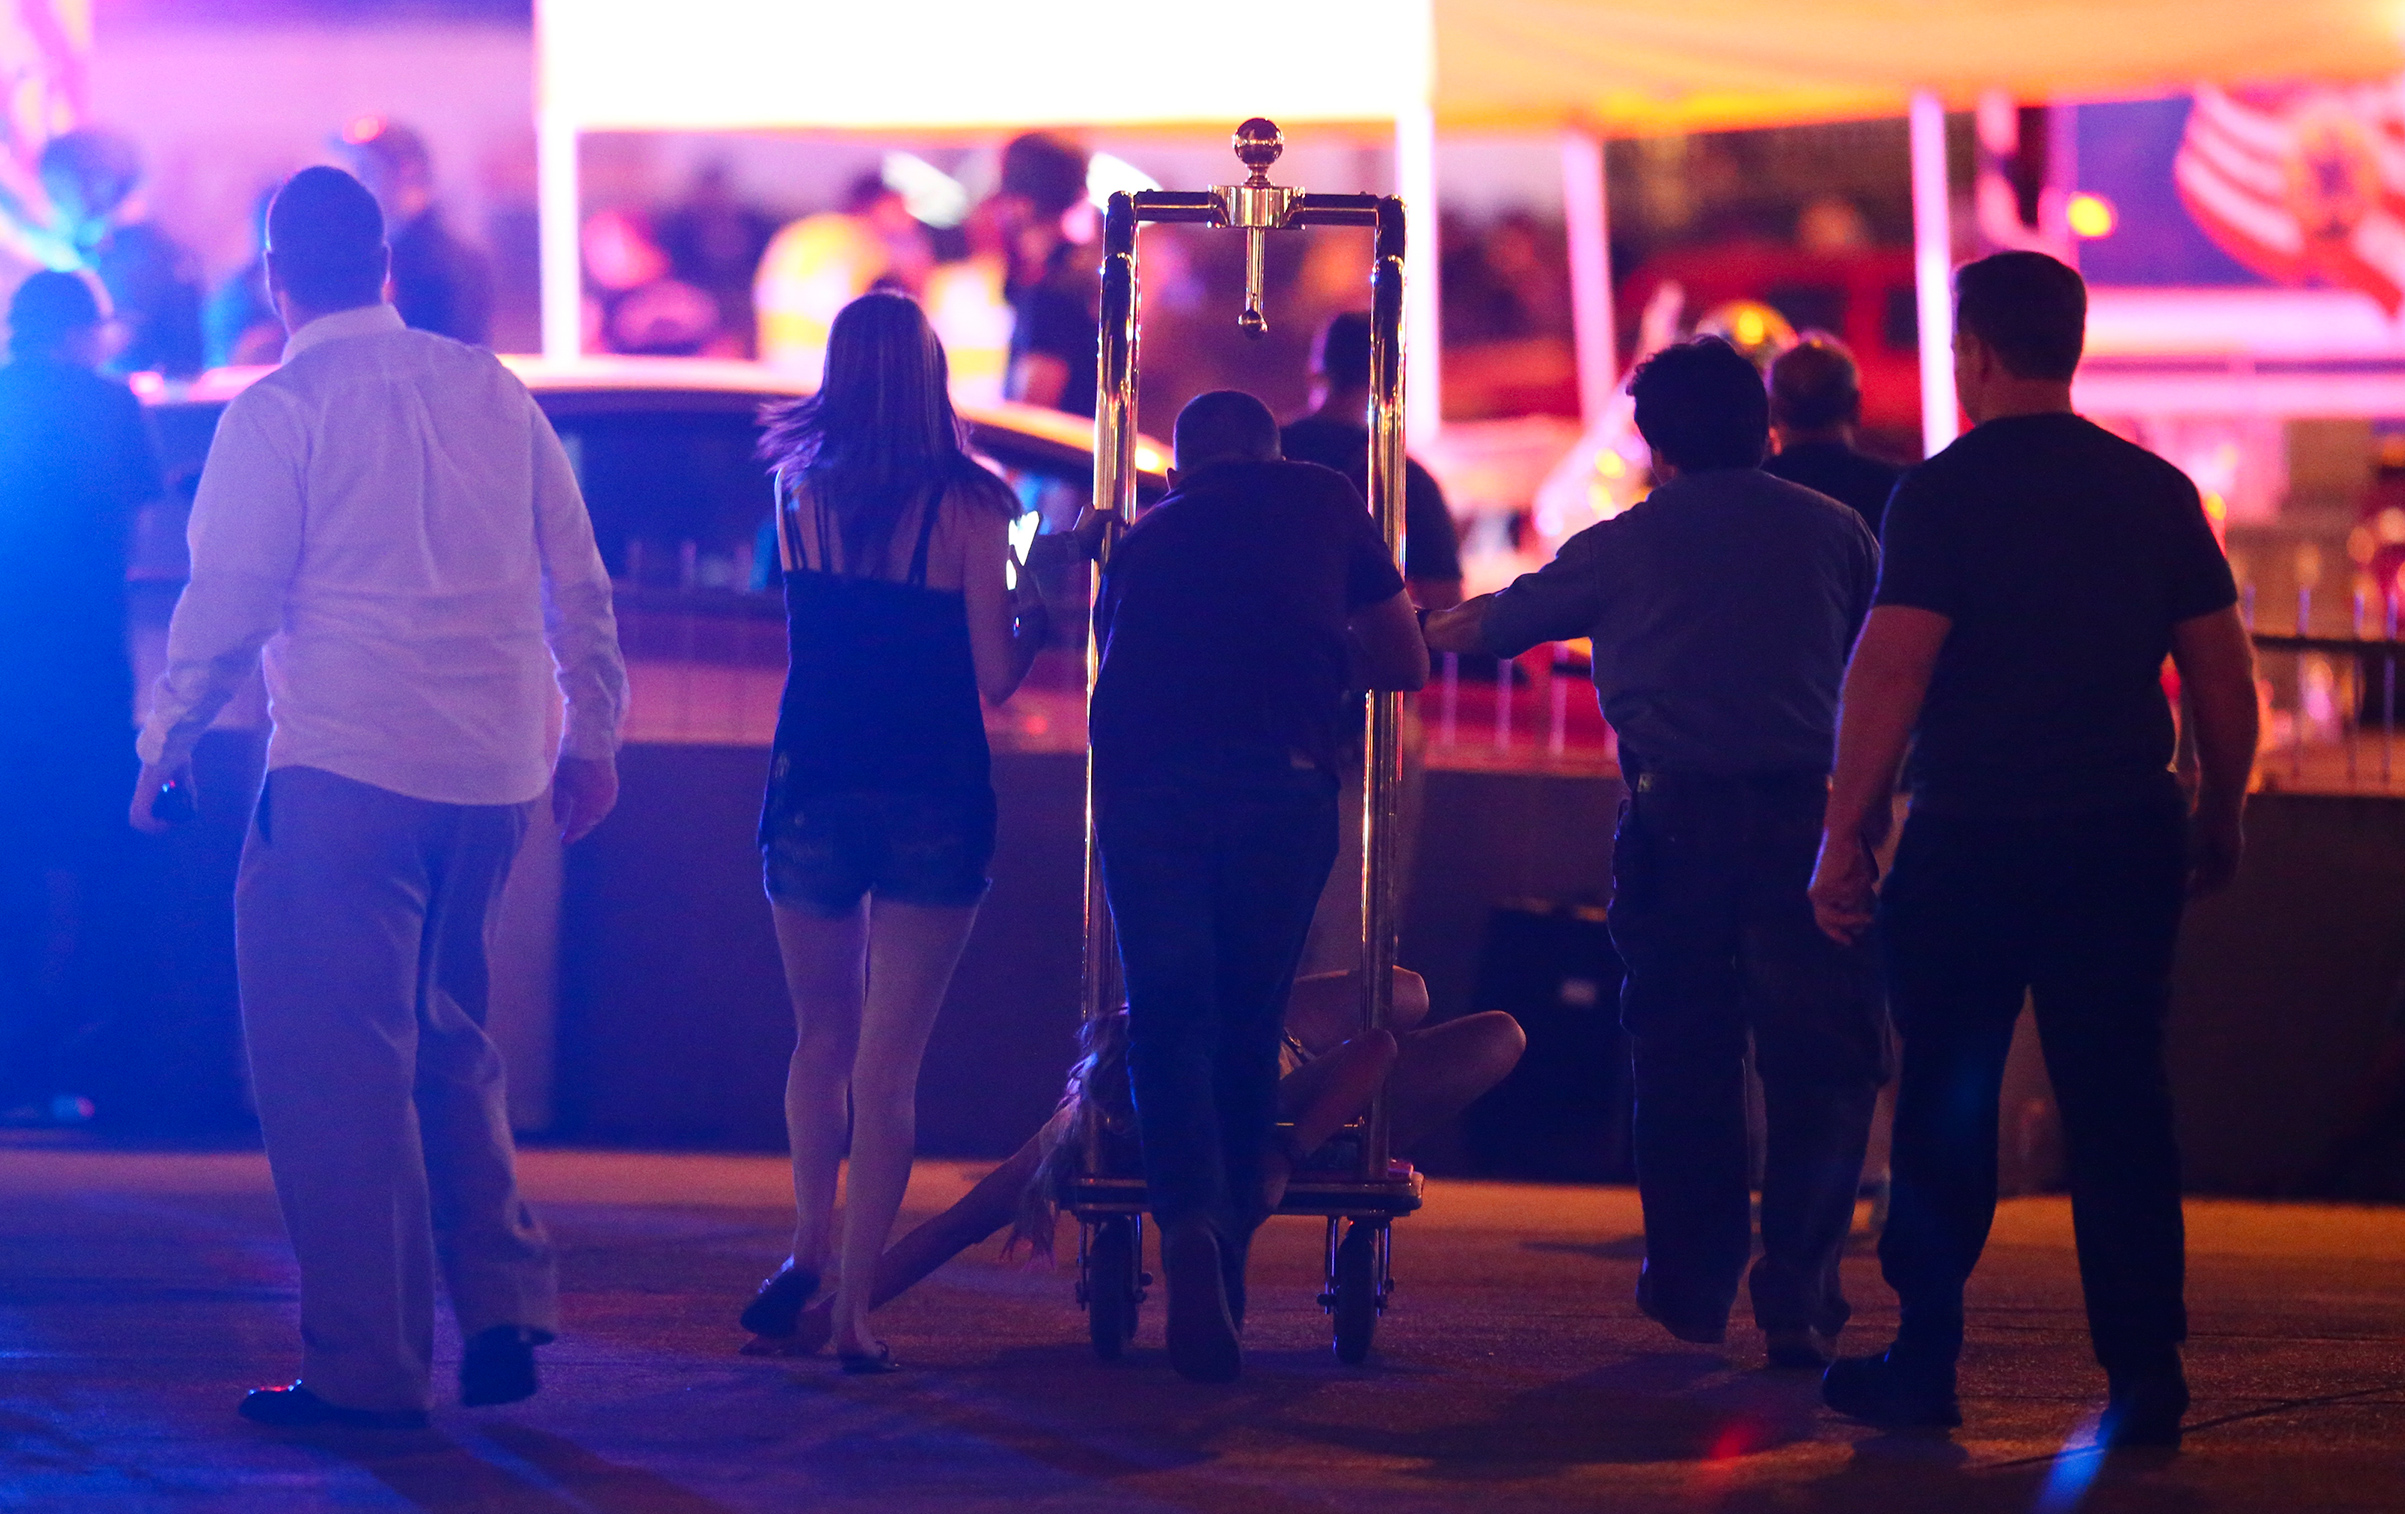 A wounded woman is moved outside the Tropicana during an active shooter situation on the Las Vegas Strip in Las Vegas Sunday, Oct. 1, 2017.